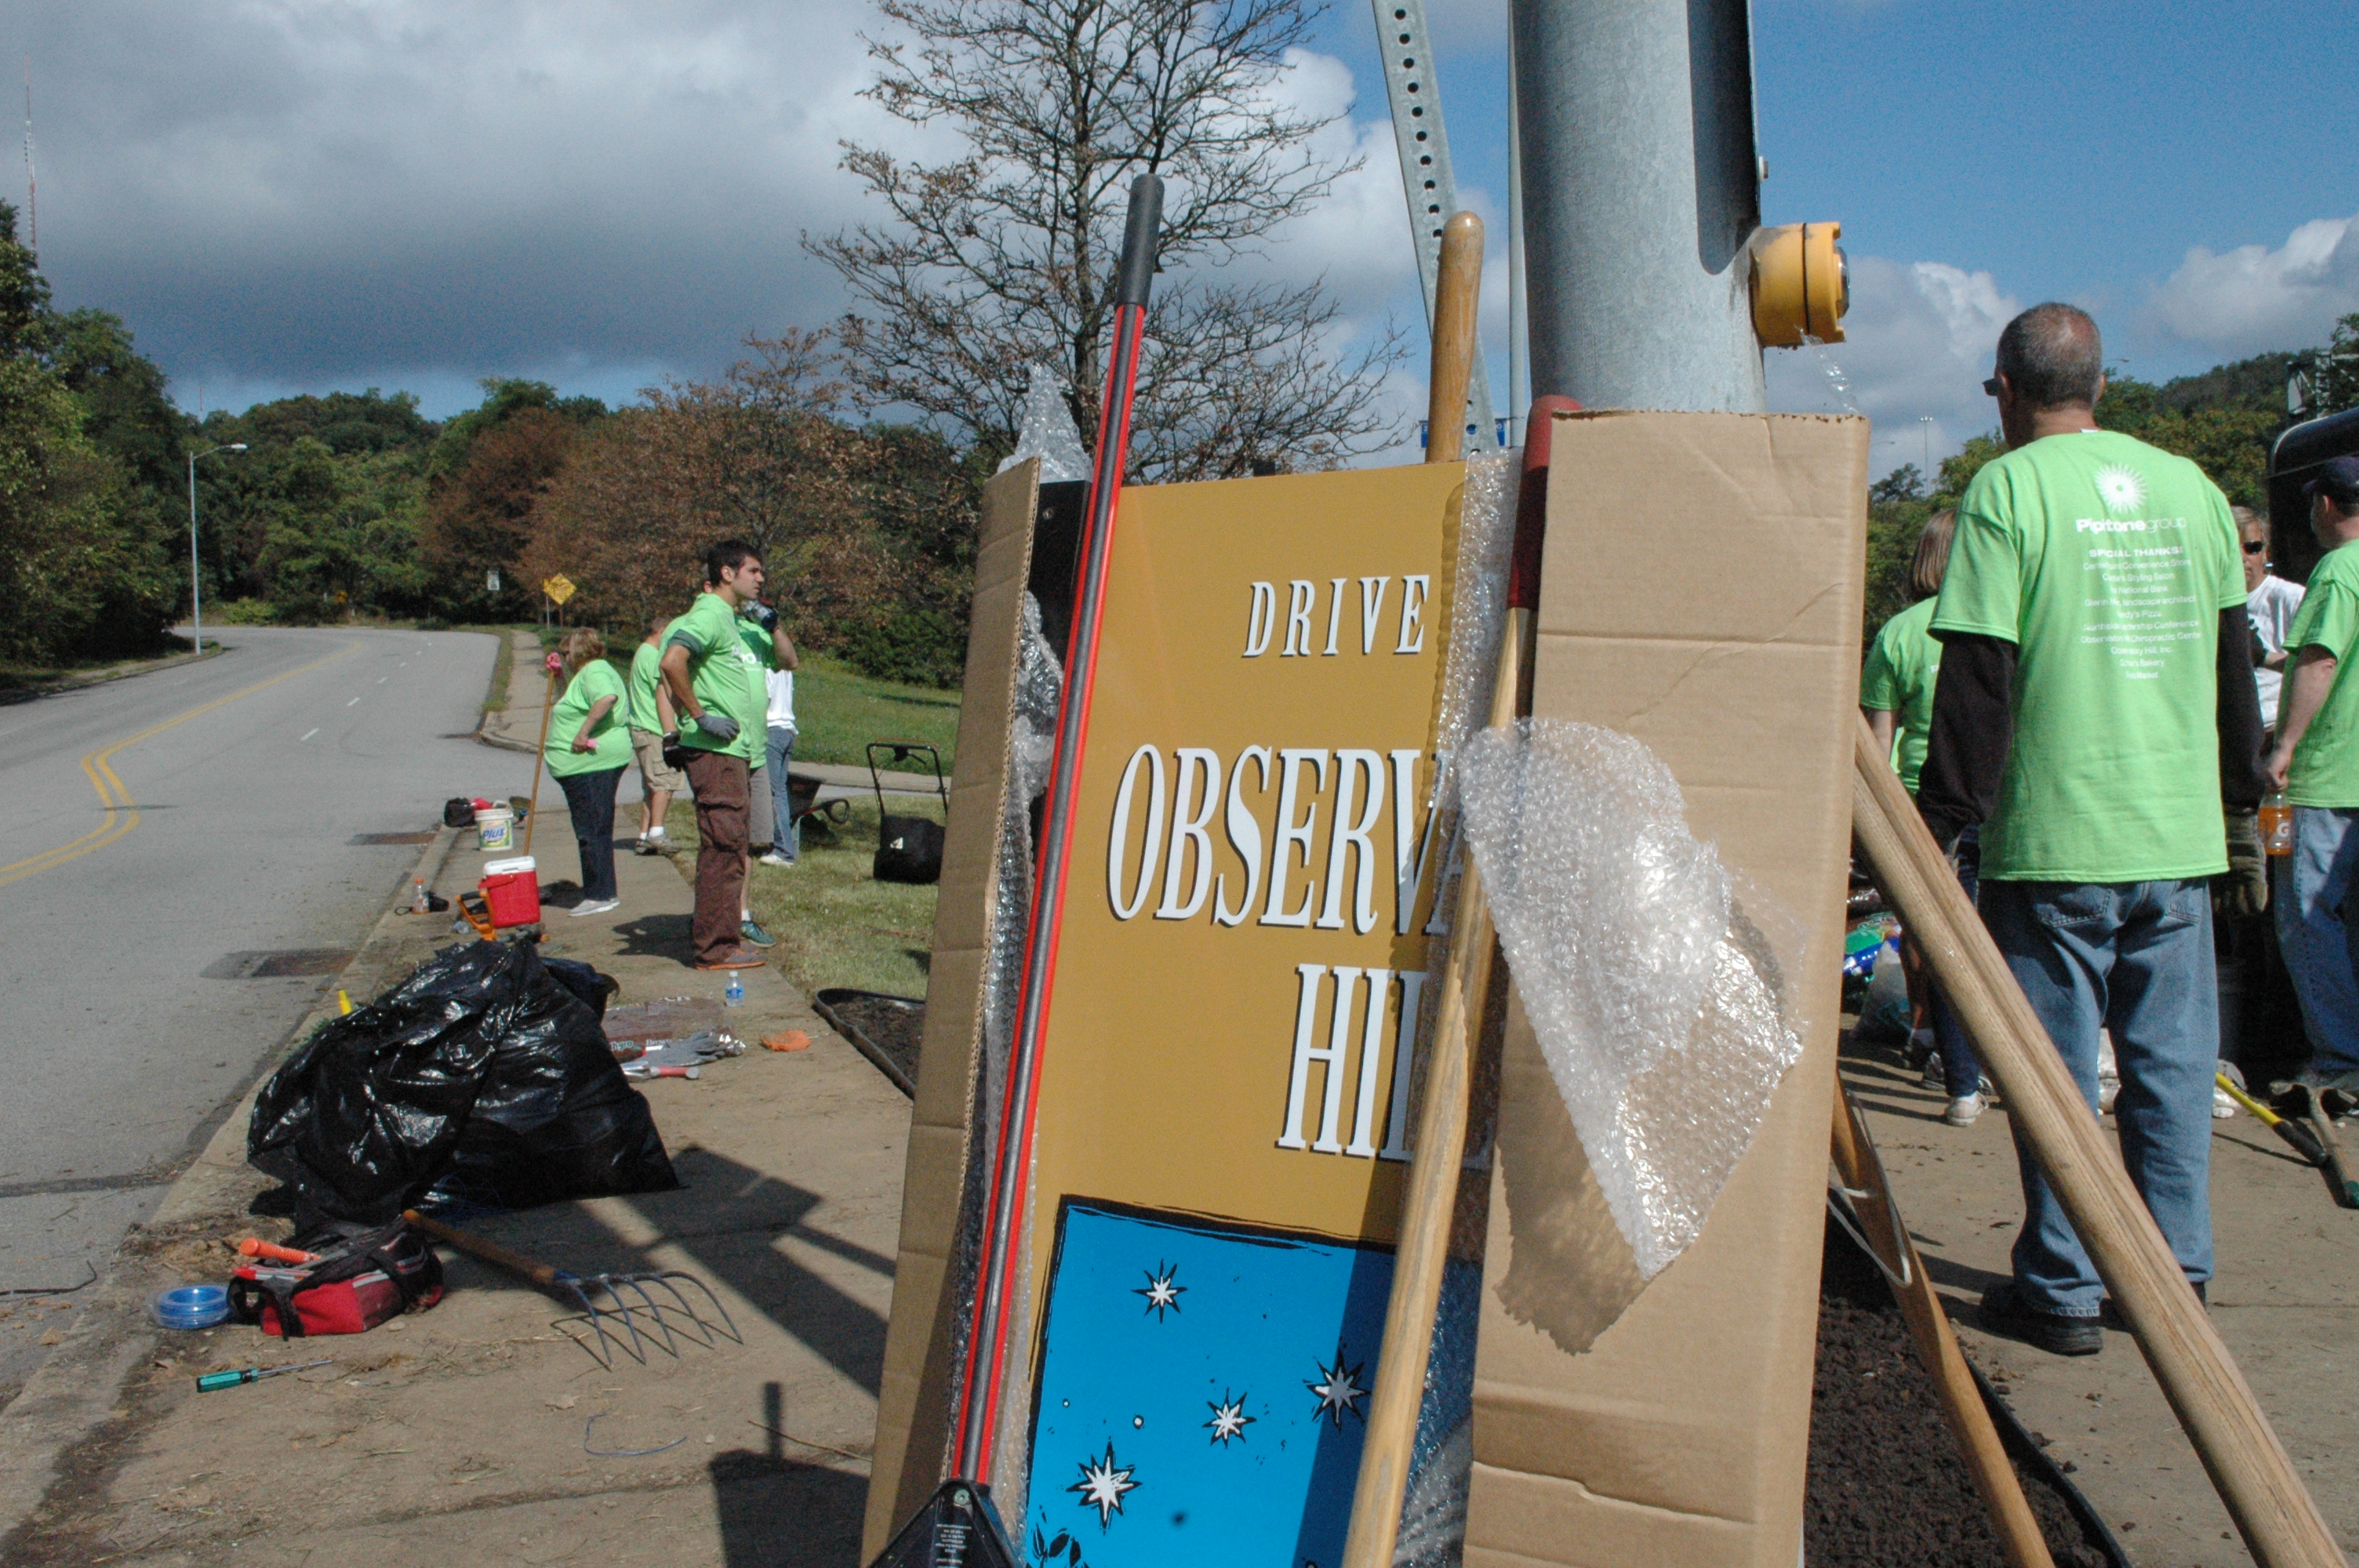 Observatory Hill business holds annual volunteer day, provides community face-lift